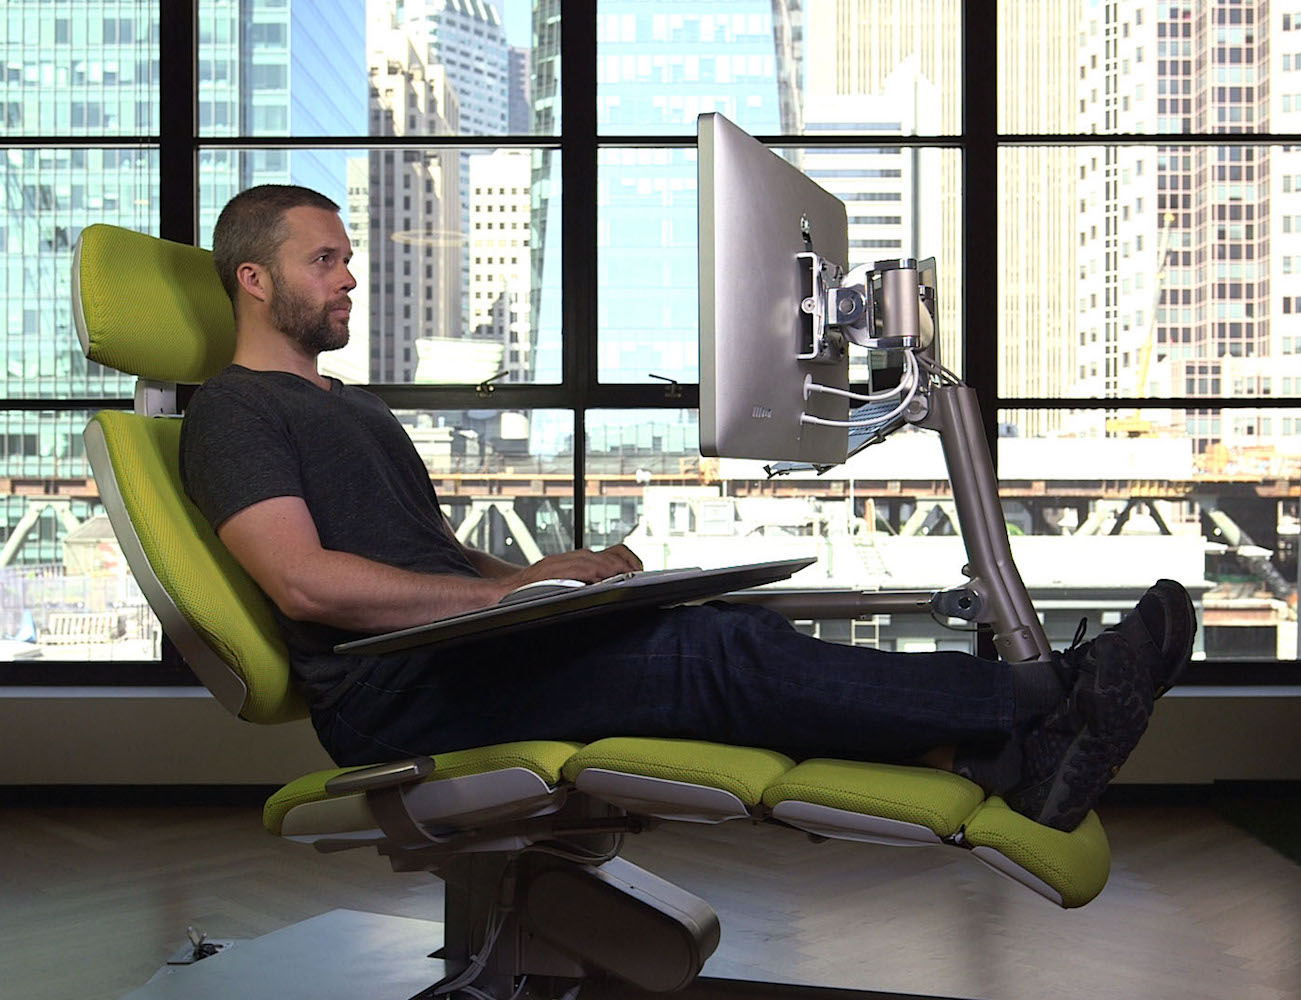 Altwork Station – The New Way to Work